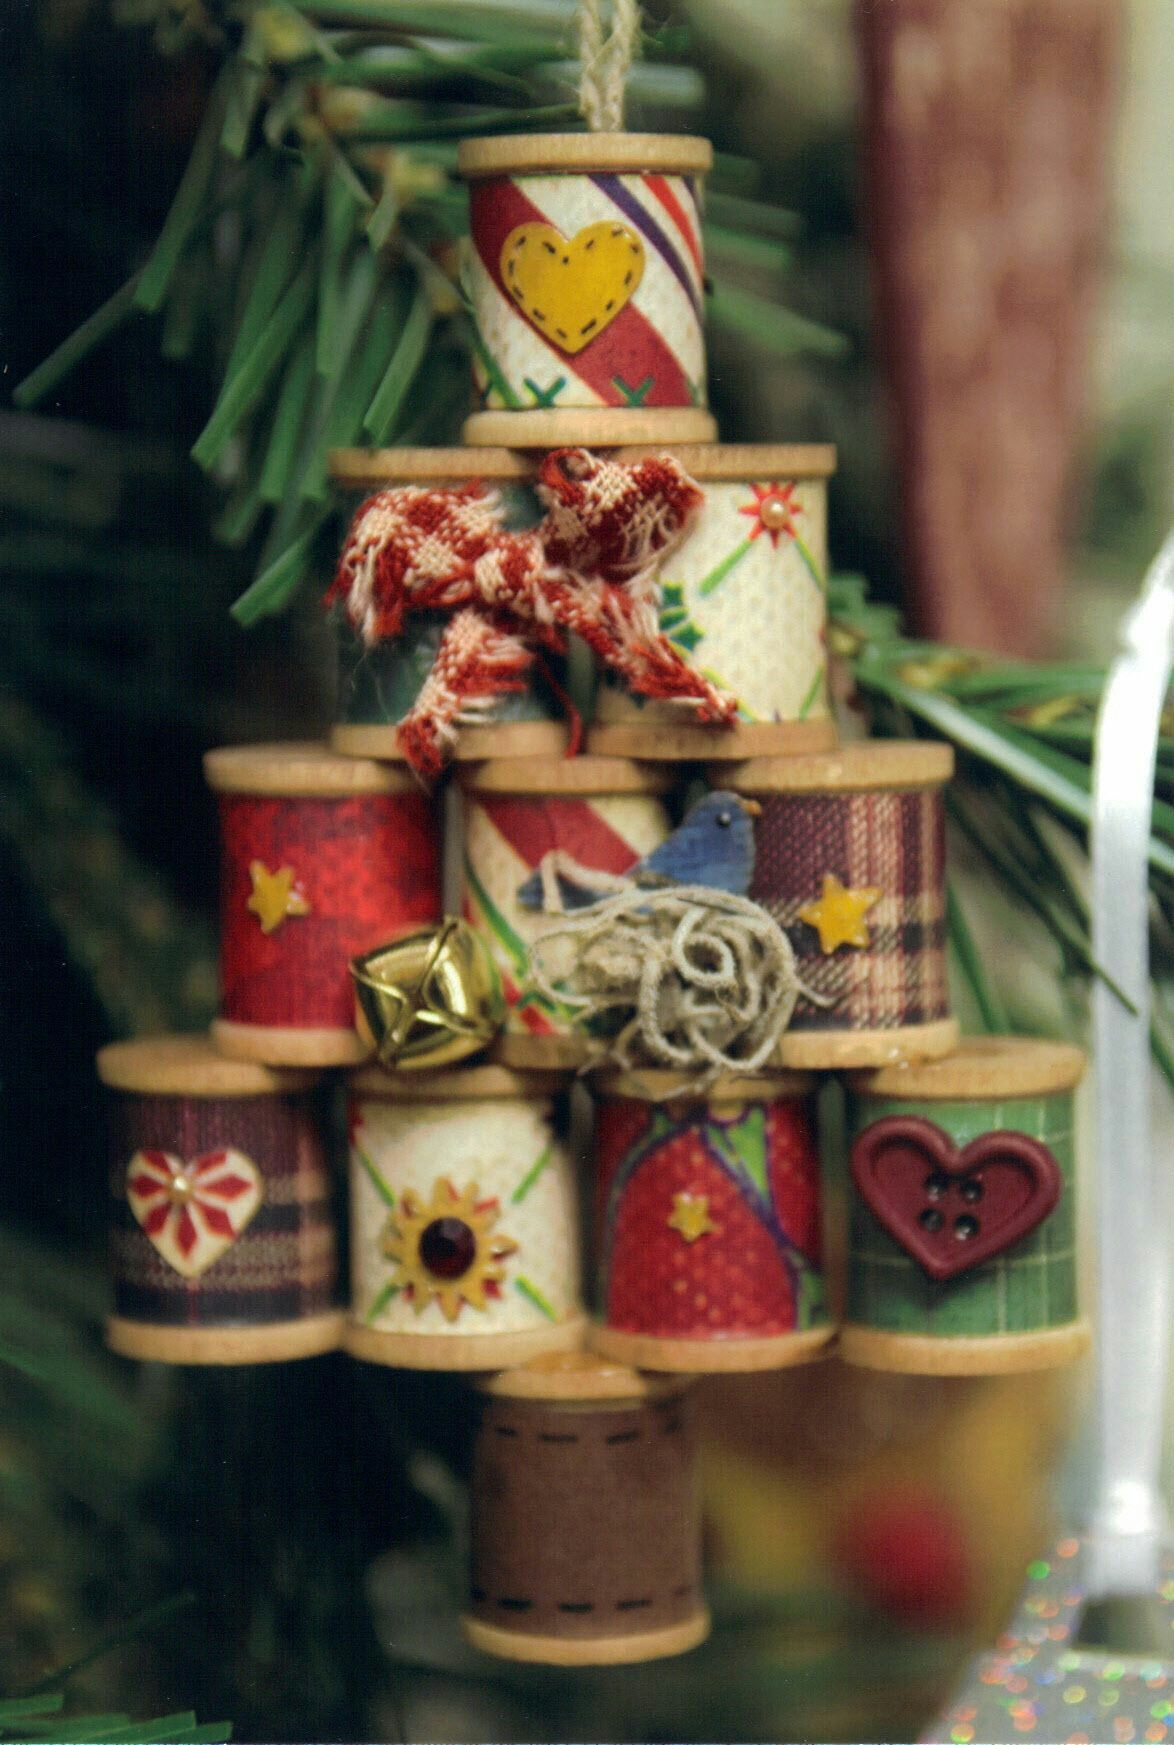 Thread Spool Christmas Ornaments Christmas Crafts To Make And Sell Thread Spool Crafts Ideas Diy Christmas Christmas Ornaments Christmas Crafts Spool Crafts